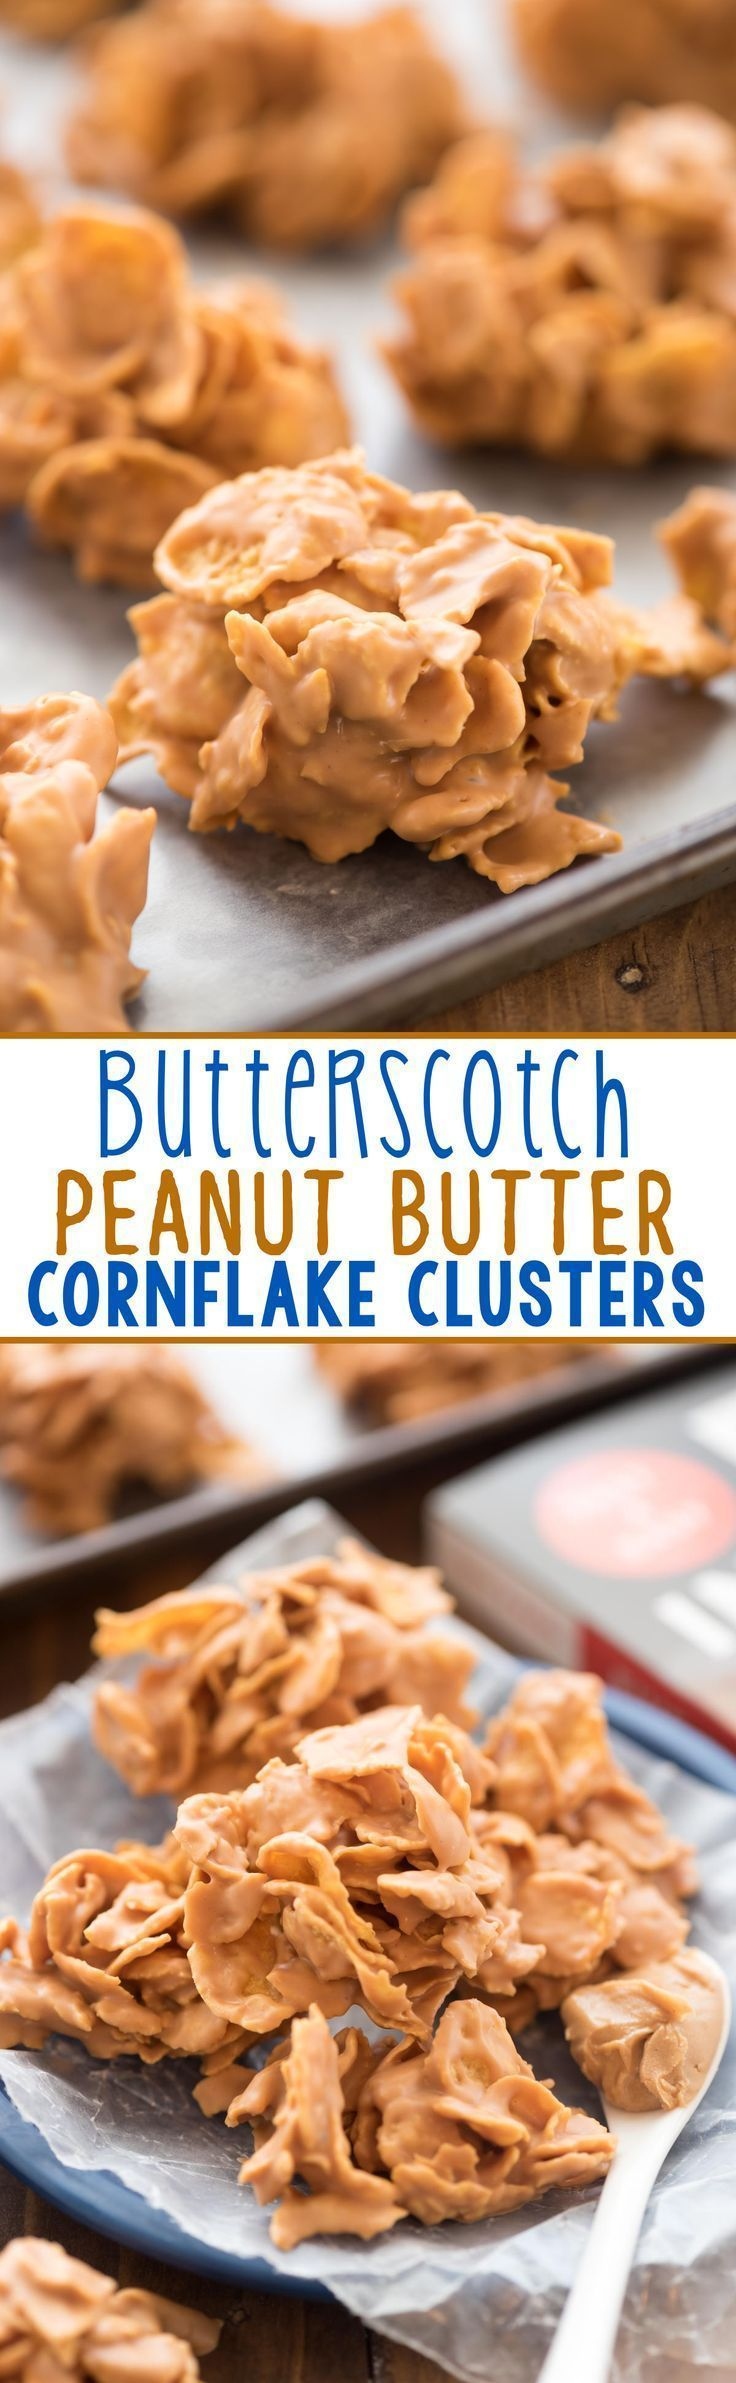 Butterscotch Peanut Butter Cornflake Clusters - this easy candy recipe has only